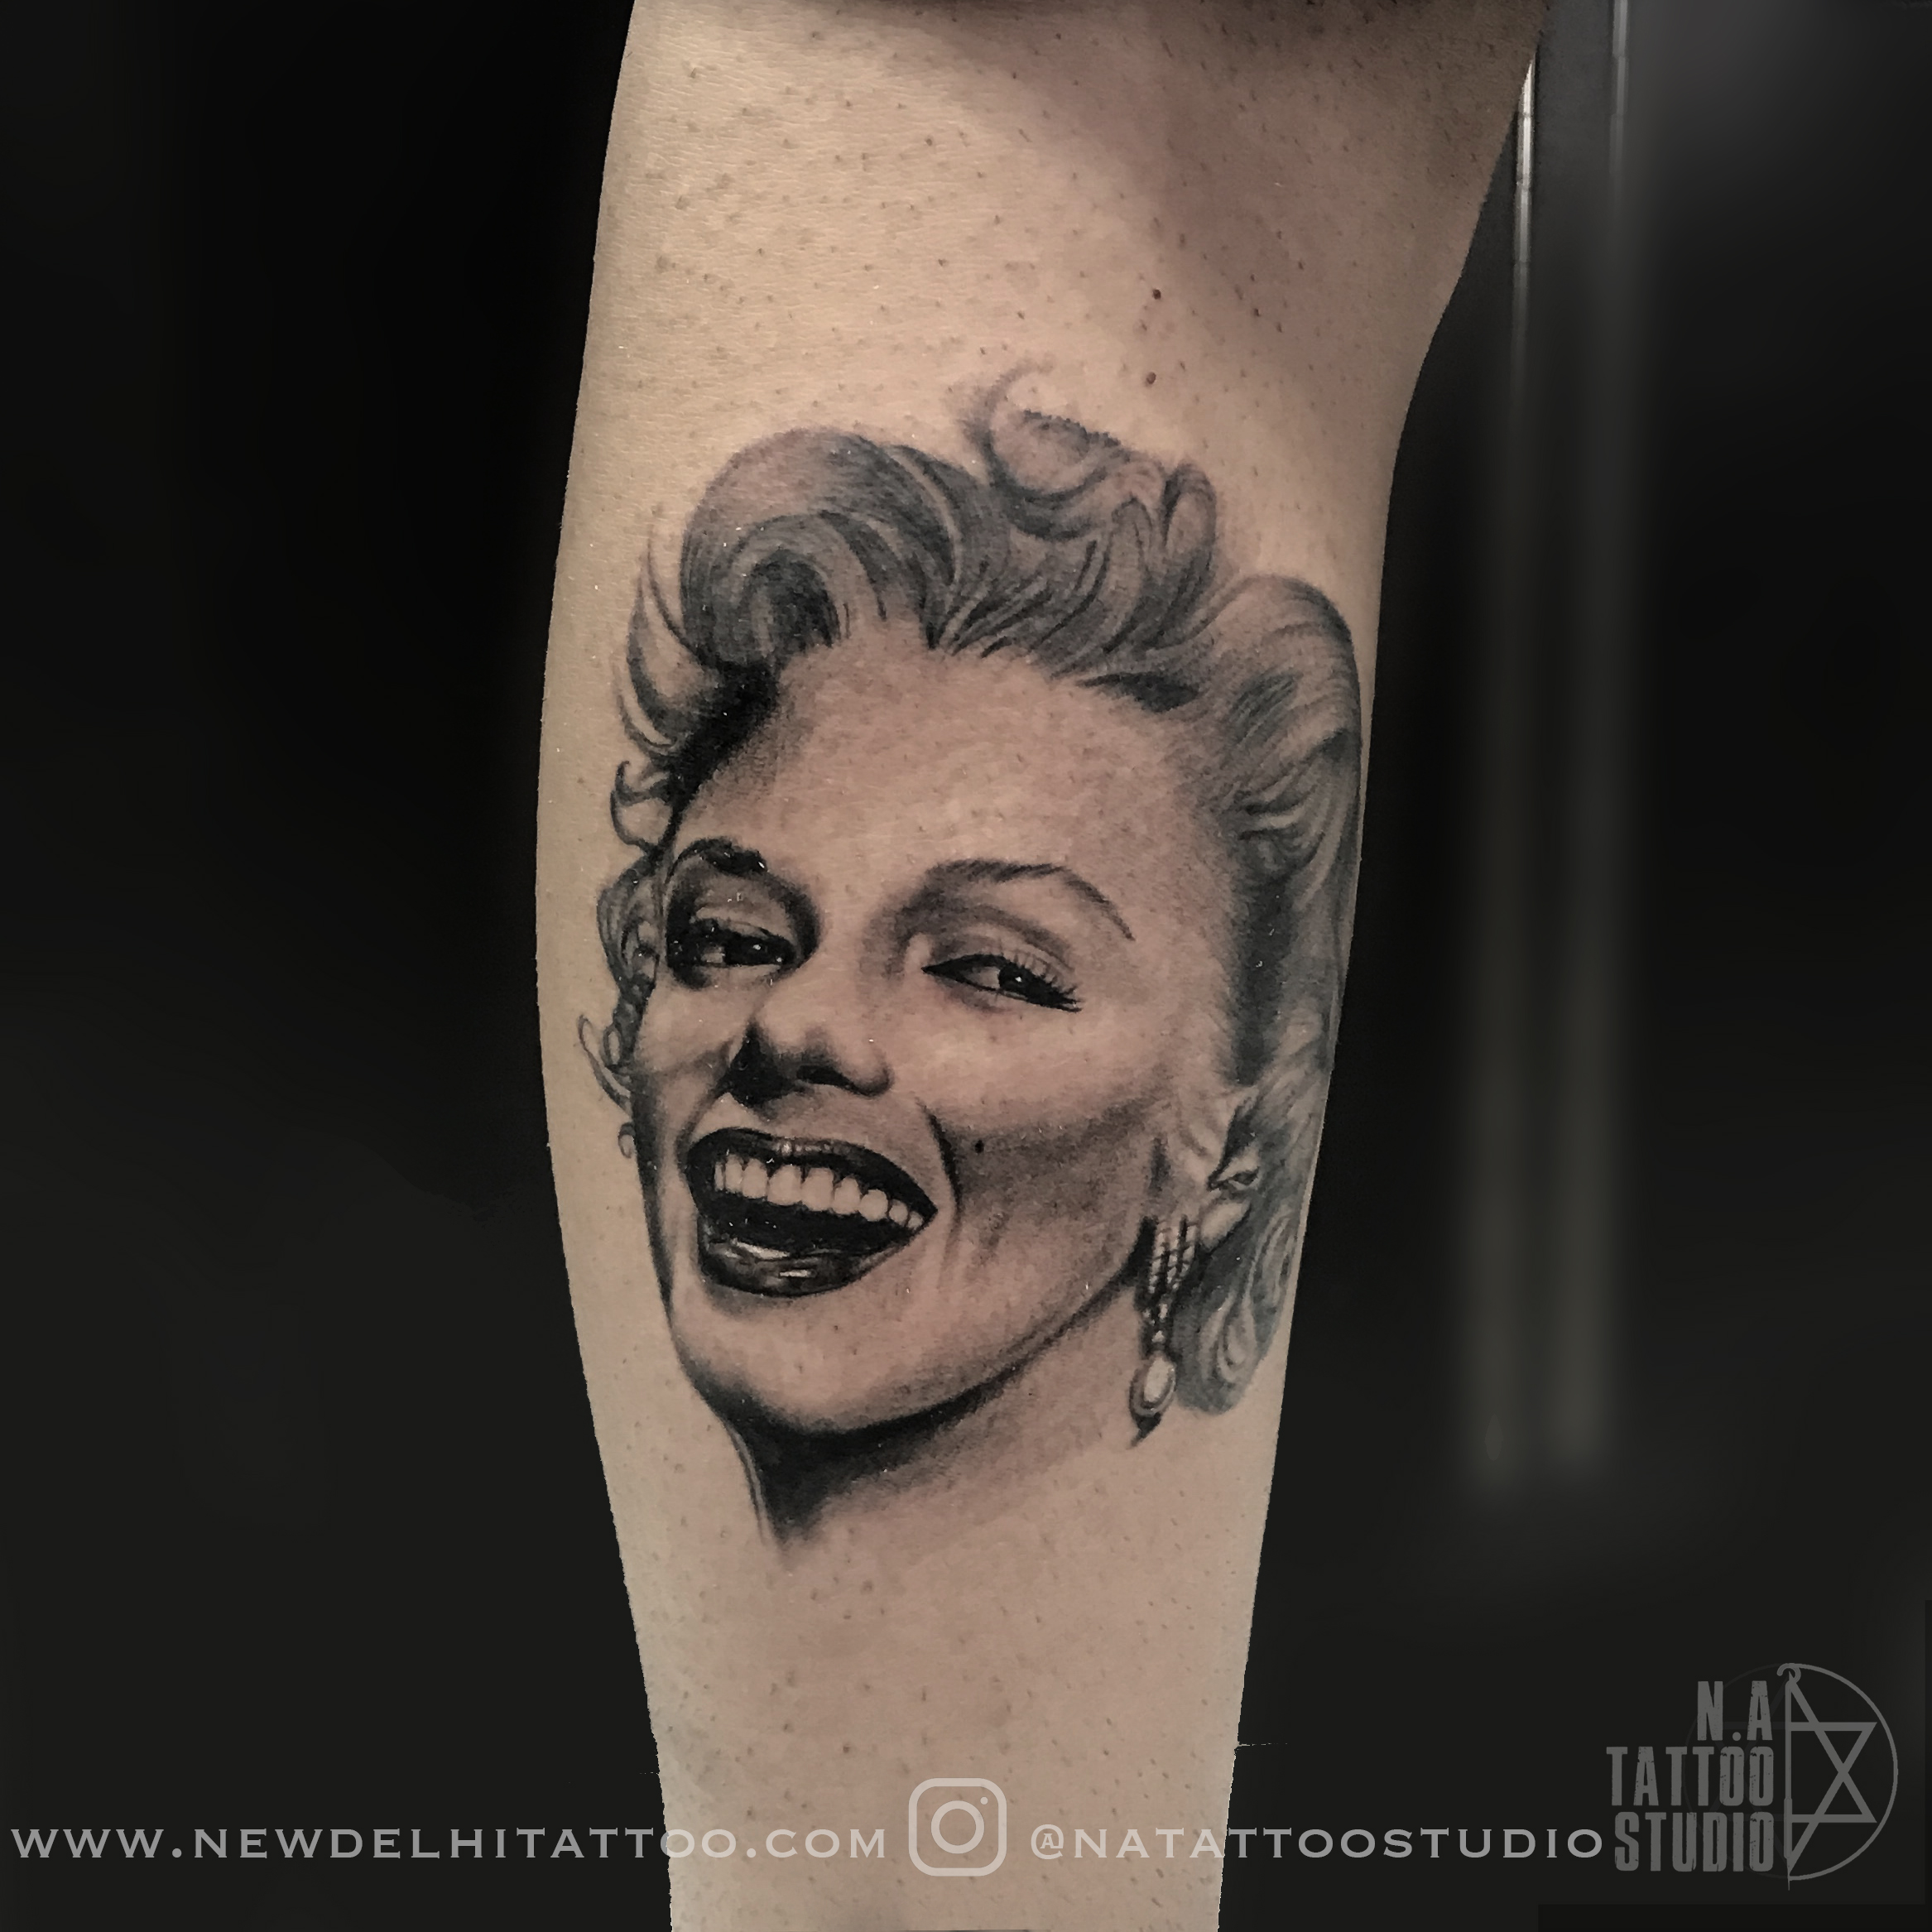 marlyn-portrait-natattoostudio